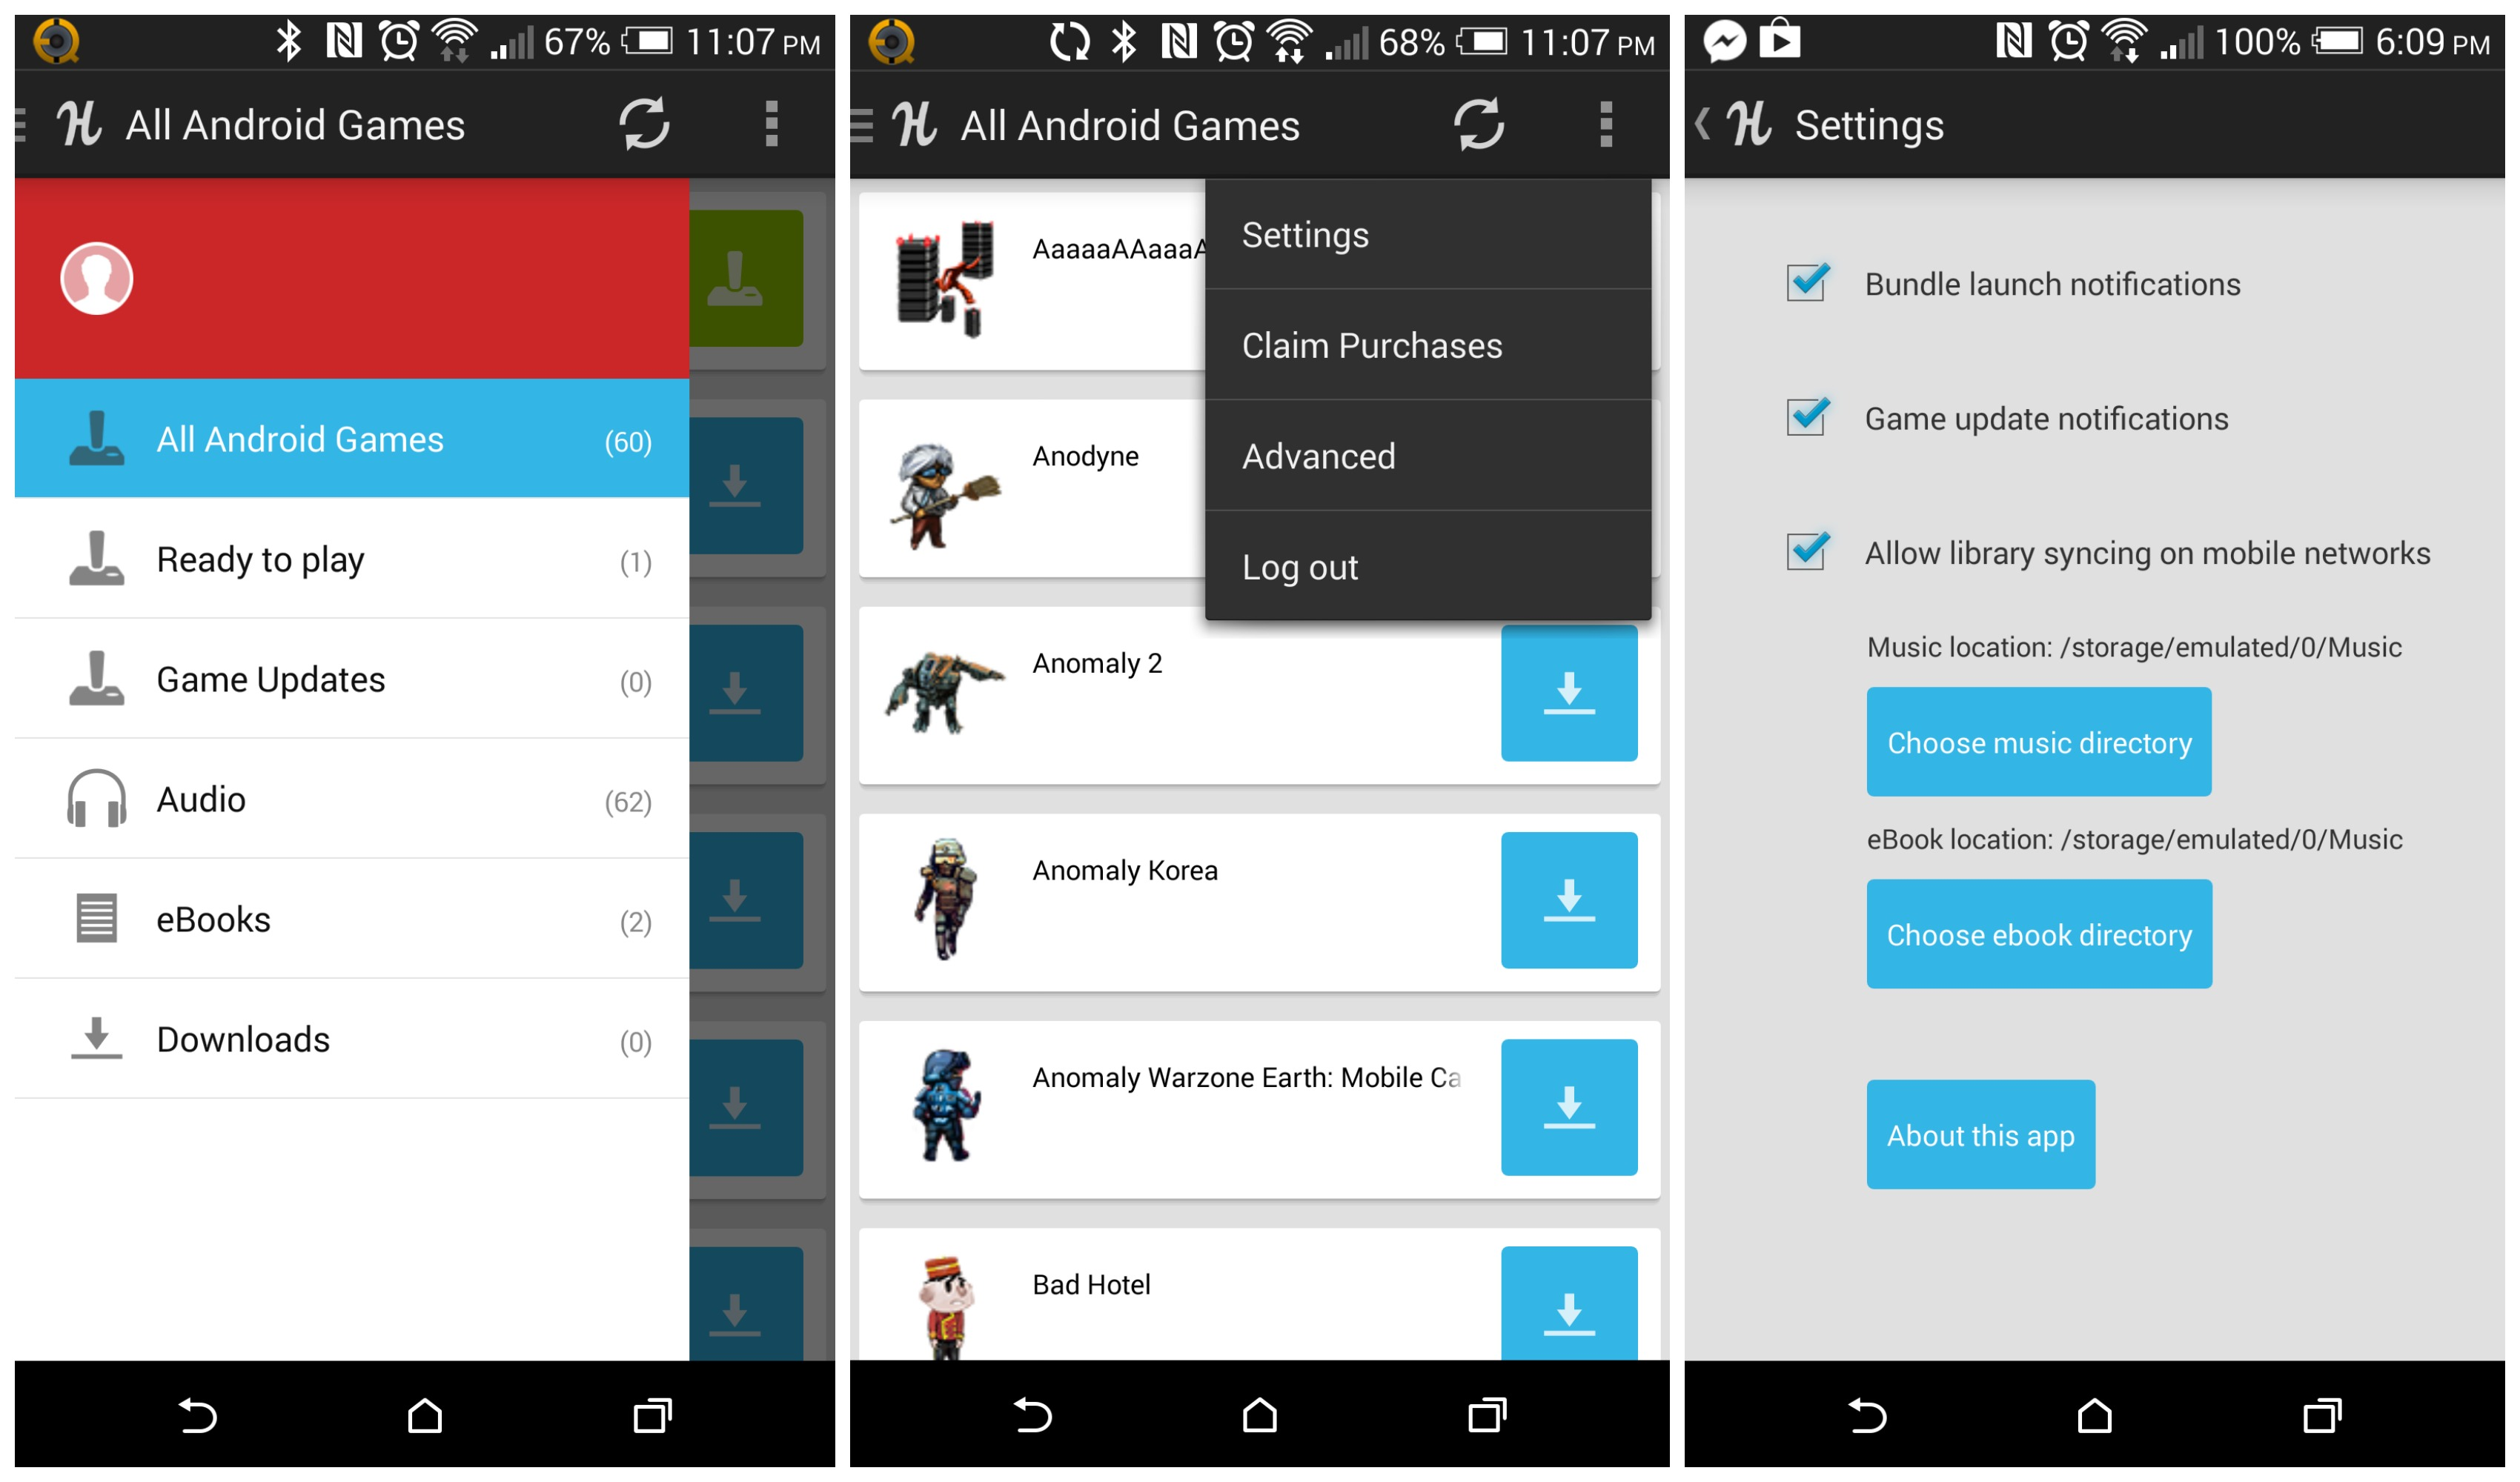 Humble Bundle Update: Where Is The Humble Bundle App For Android On Google Play?